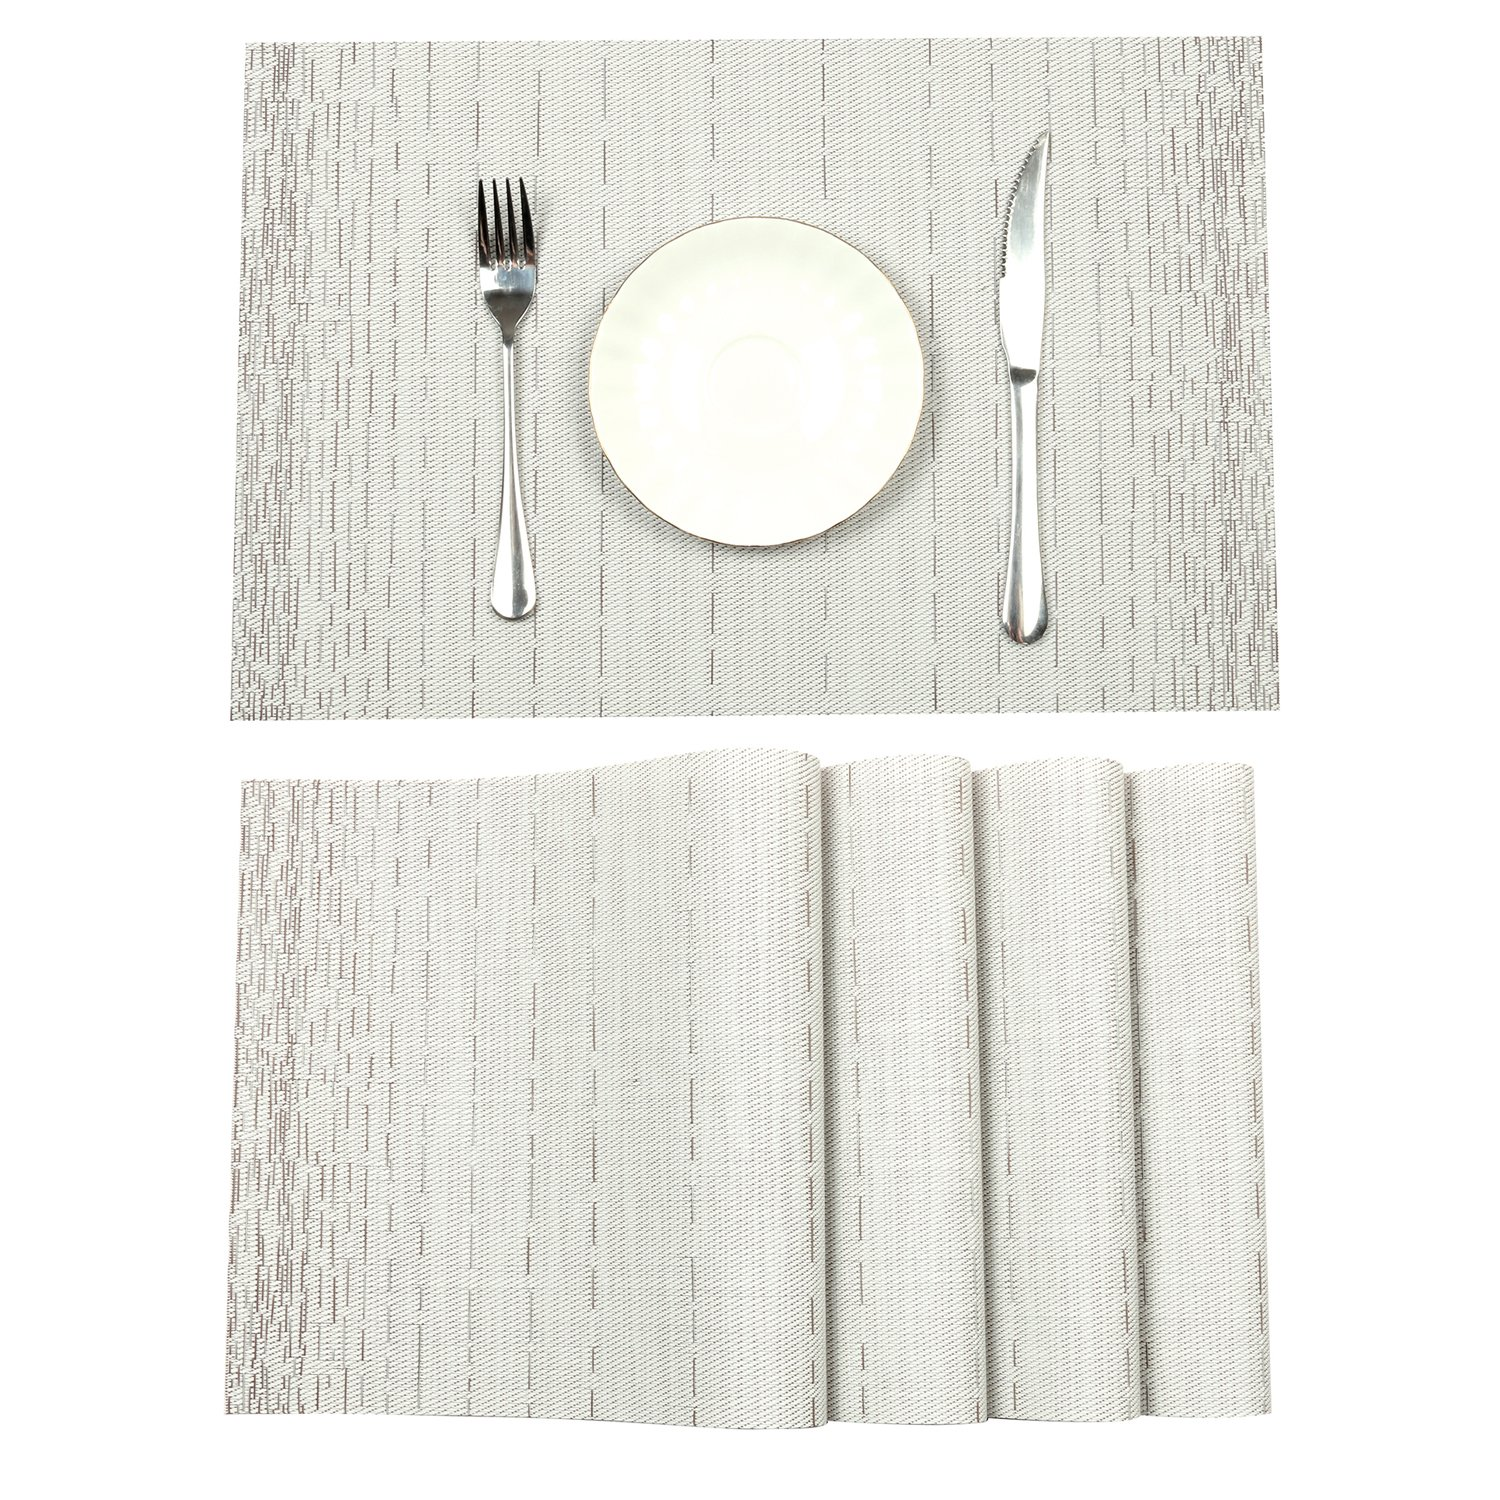 Pauwer Placemats for Dining Table Heat Resistant Stain Resistant Washable PVC Placemats Set of 6 Kitchen Table Place Mats Woven Vinyl Placemats (White, Set of 6)